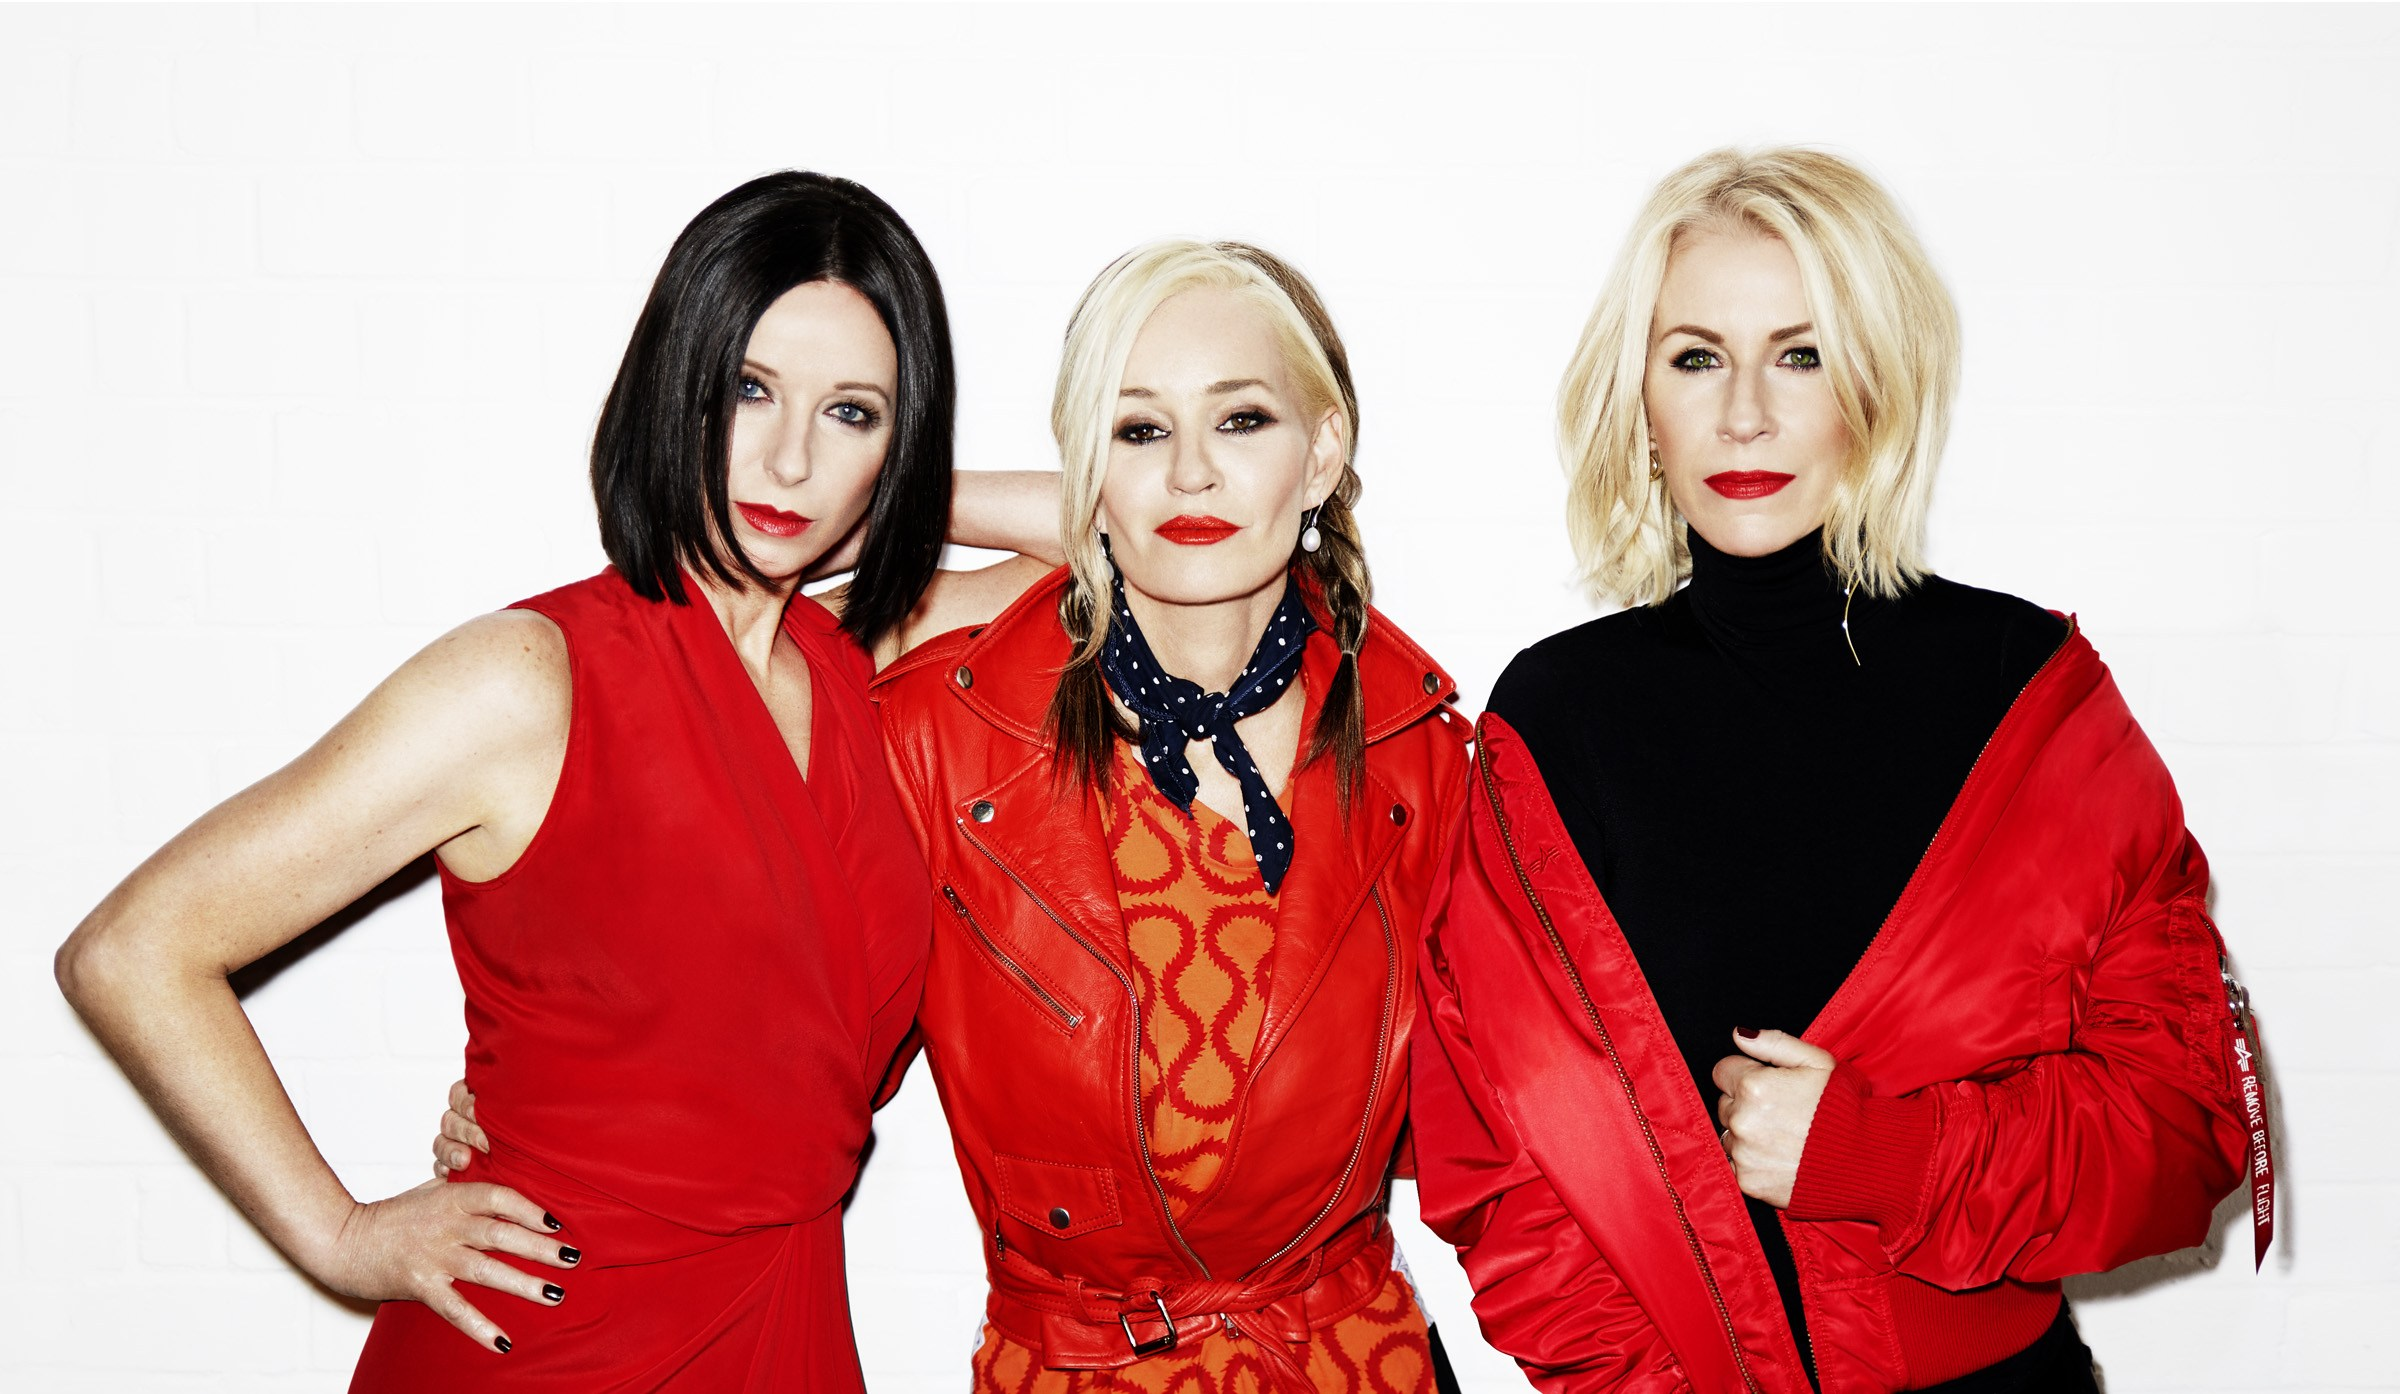 Bananarama in matching red outfits